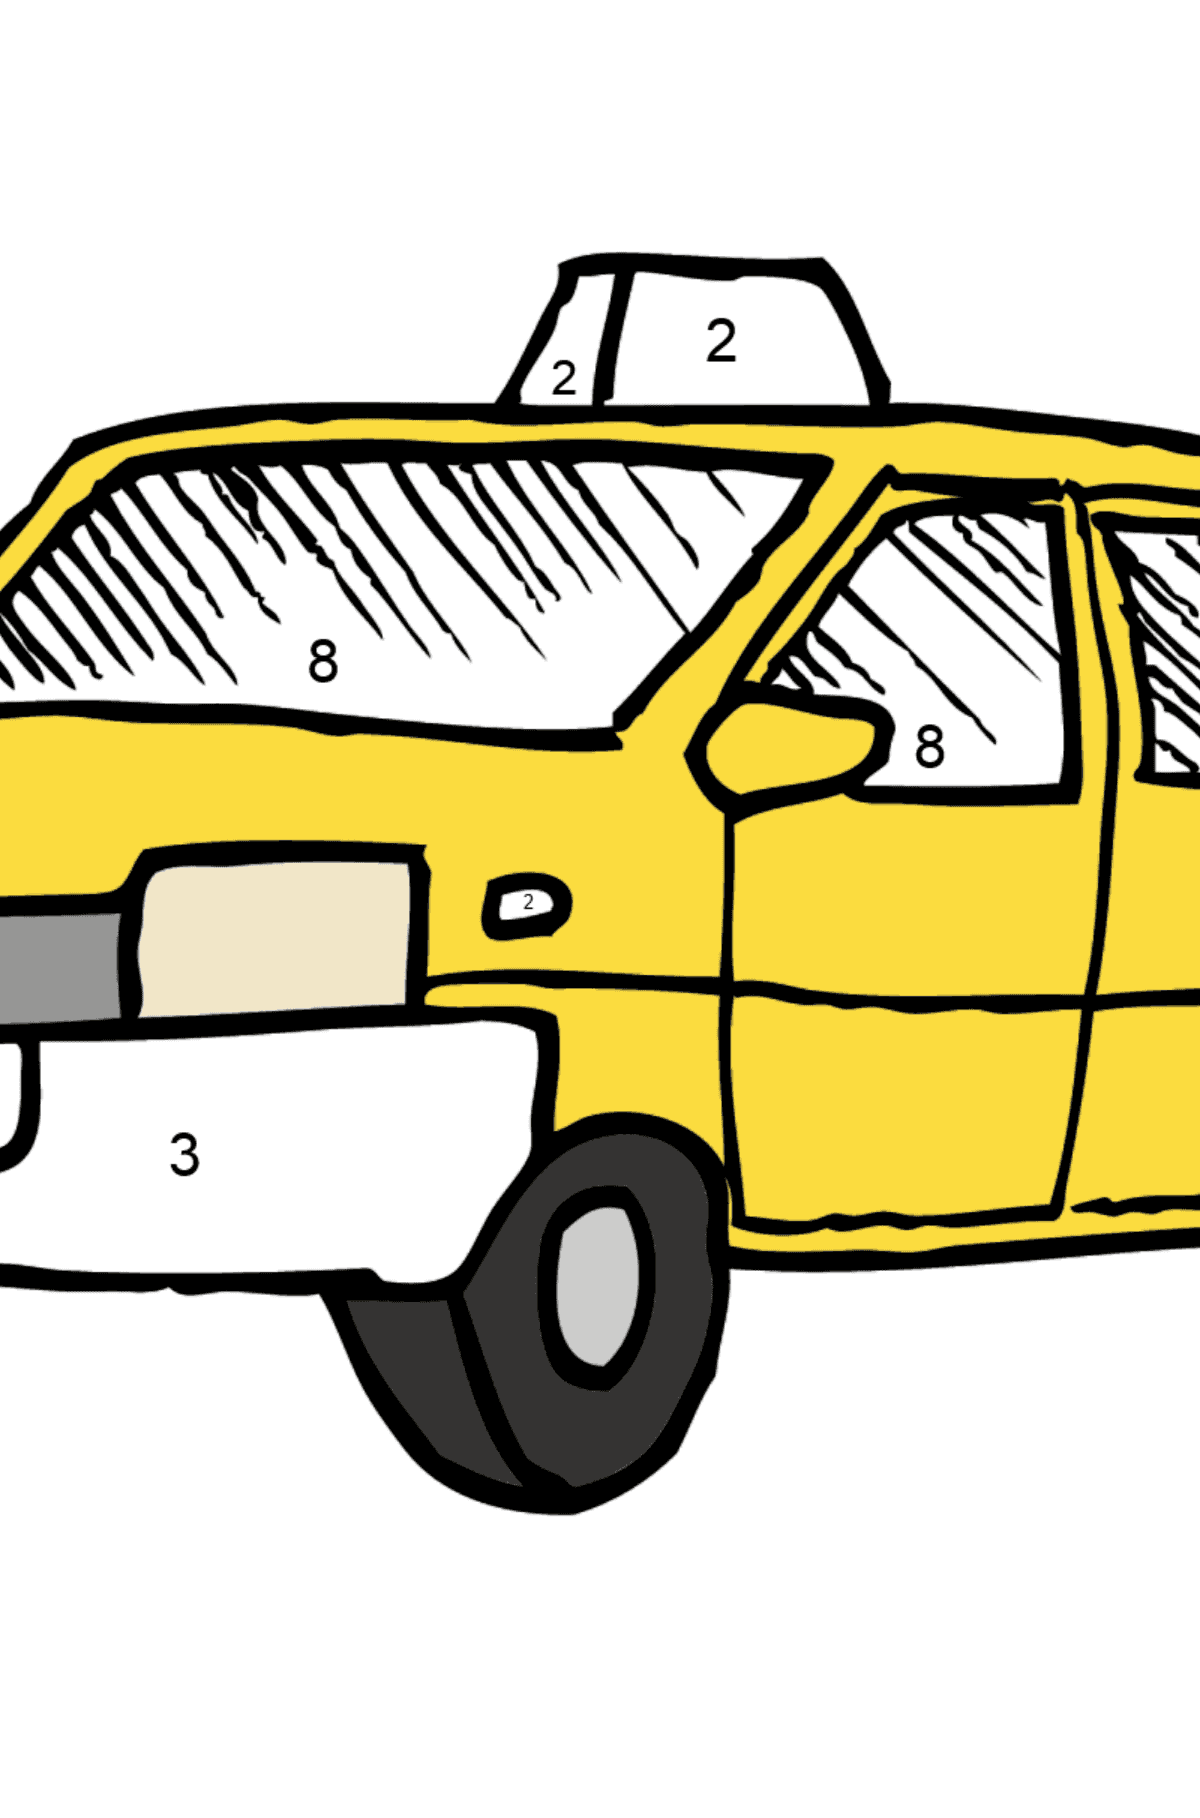 Coloring Page - A Yellow Taxi - Coloring by Numbers for Kids